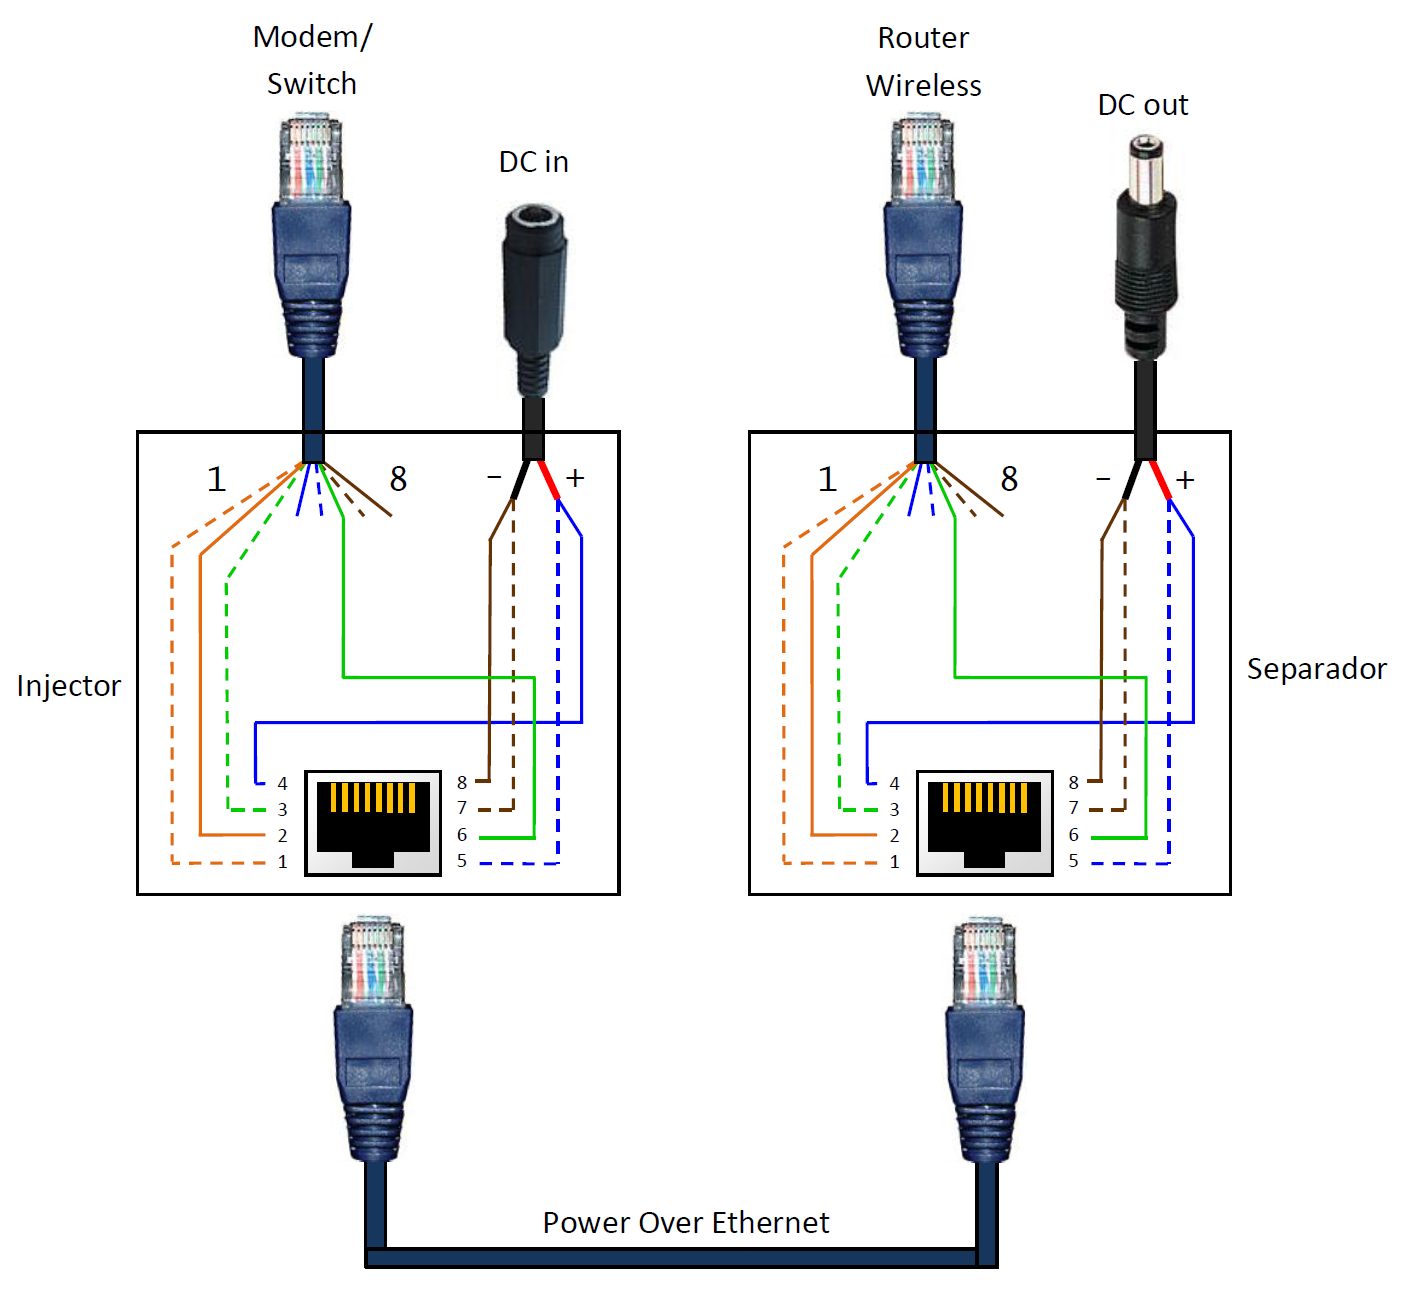 Rj45 Wiring Diagram Poe Free For You Cat 5 Cable Pinout Also Jack Further Injector U2022 Rh Evolvedlife Store Phone 6